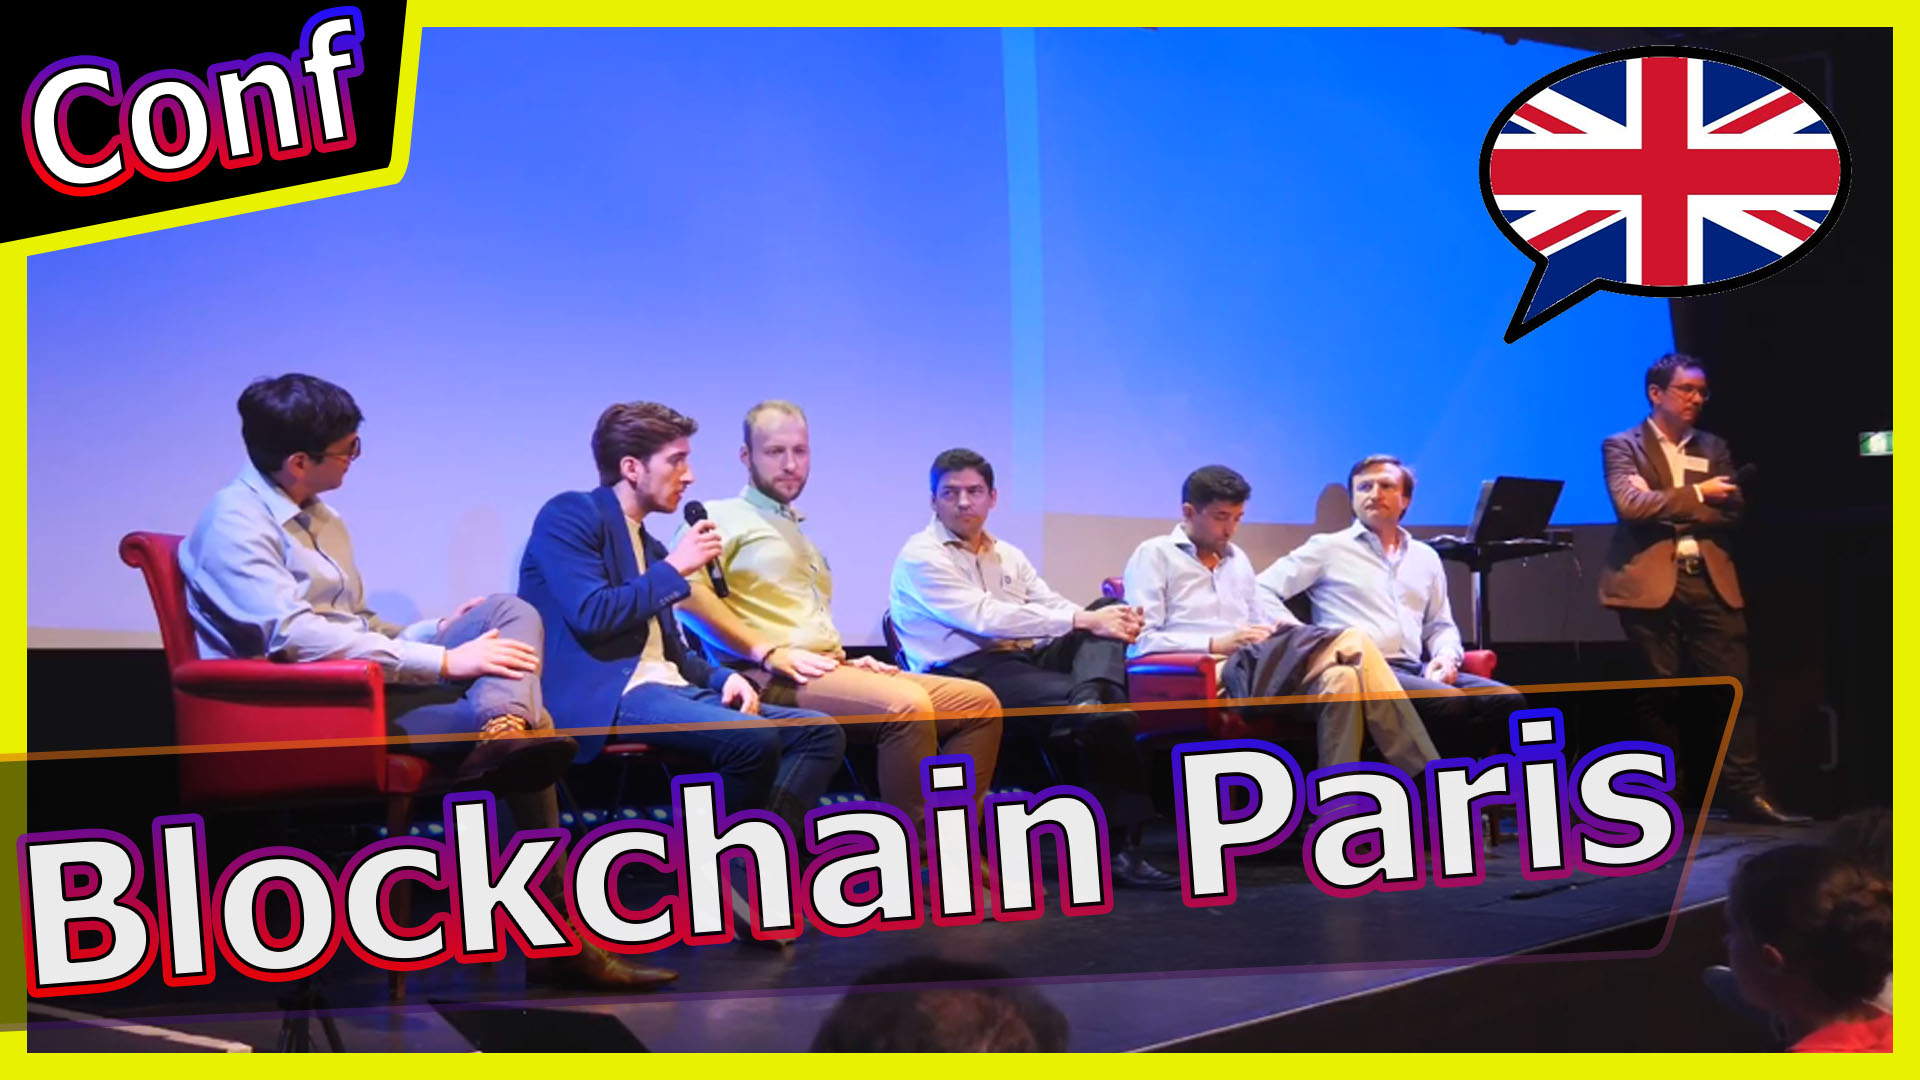 Conférence internationale Crypto Blockchain à Paris 5 juillet 2018 [English]